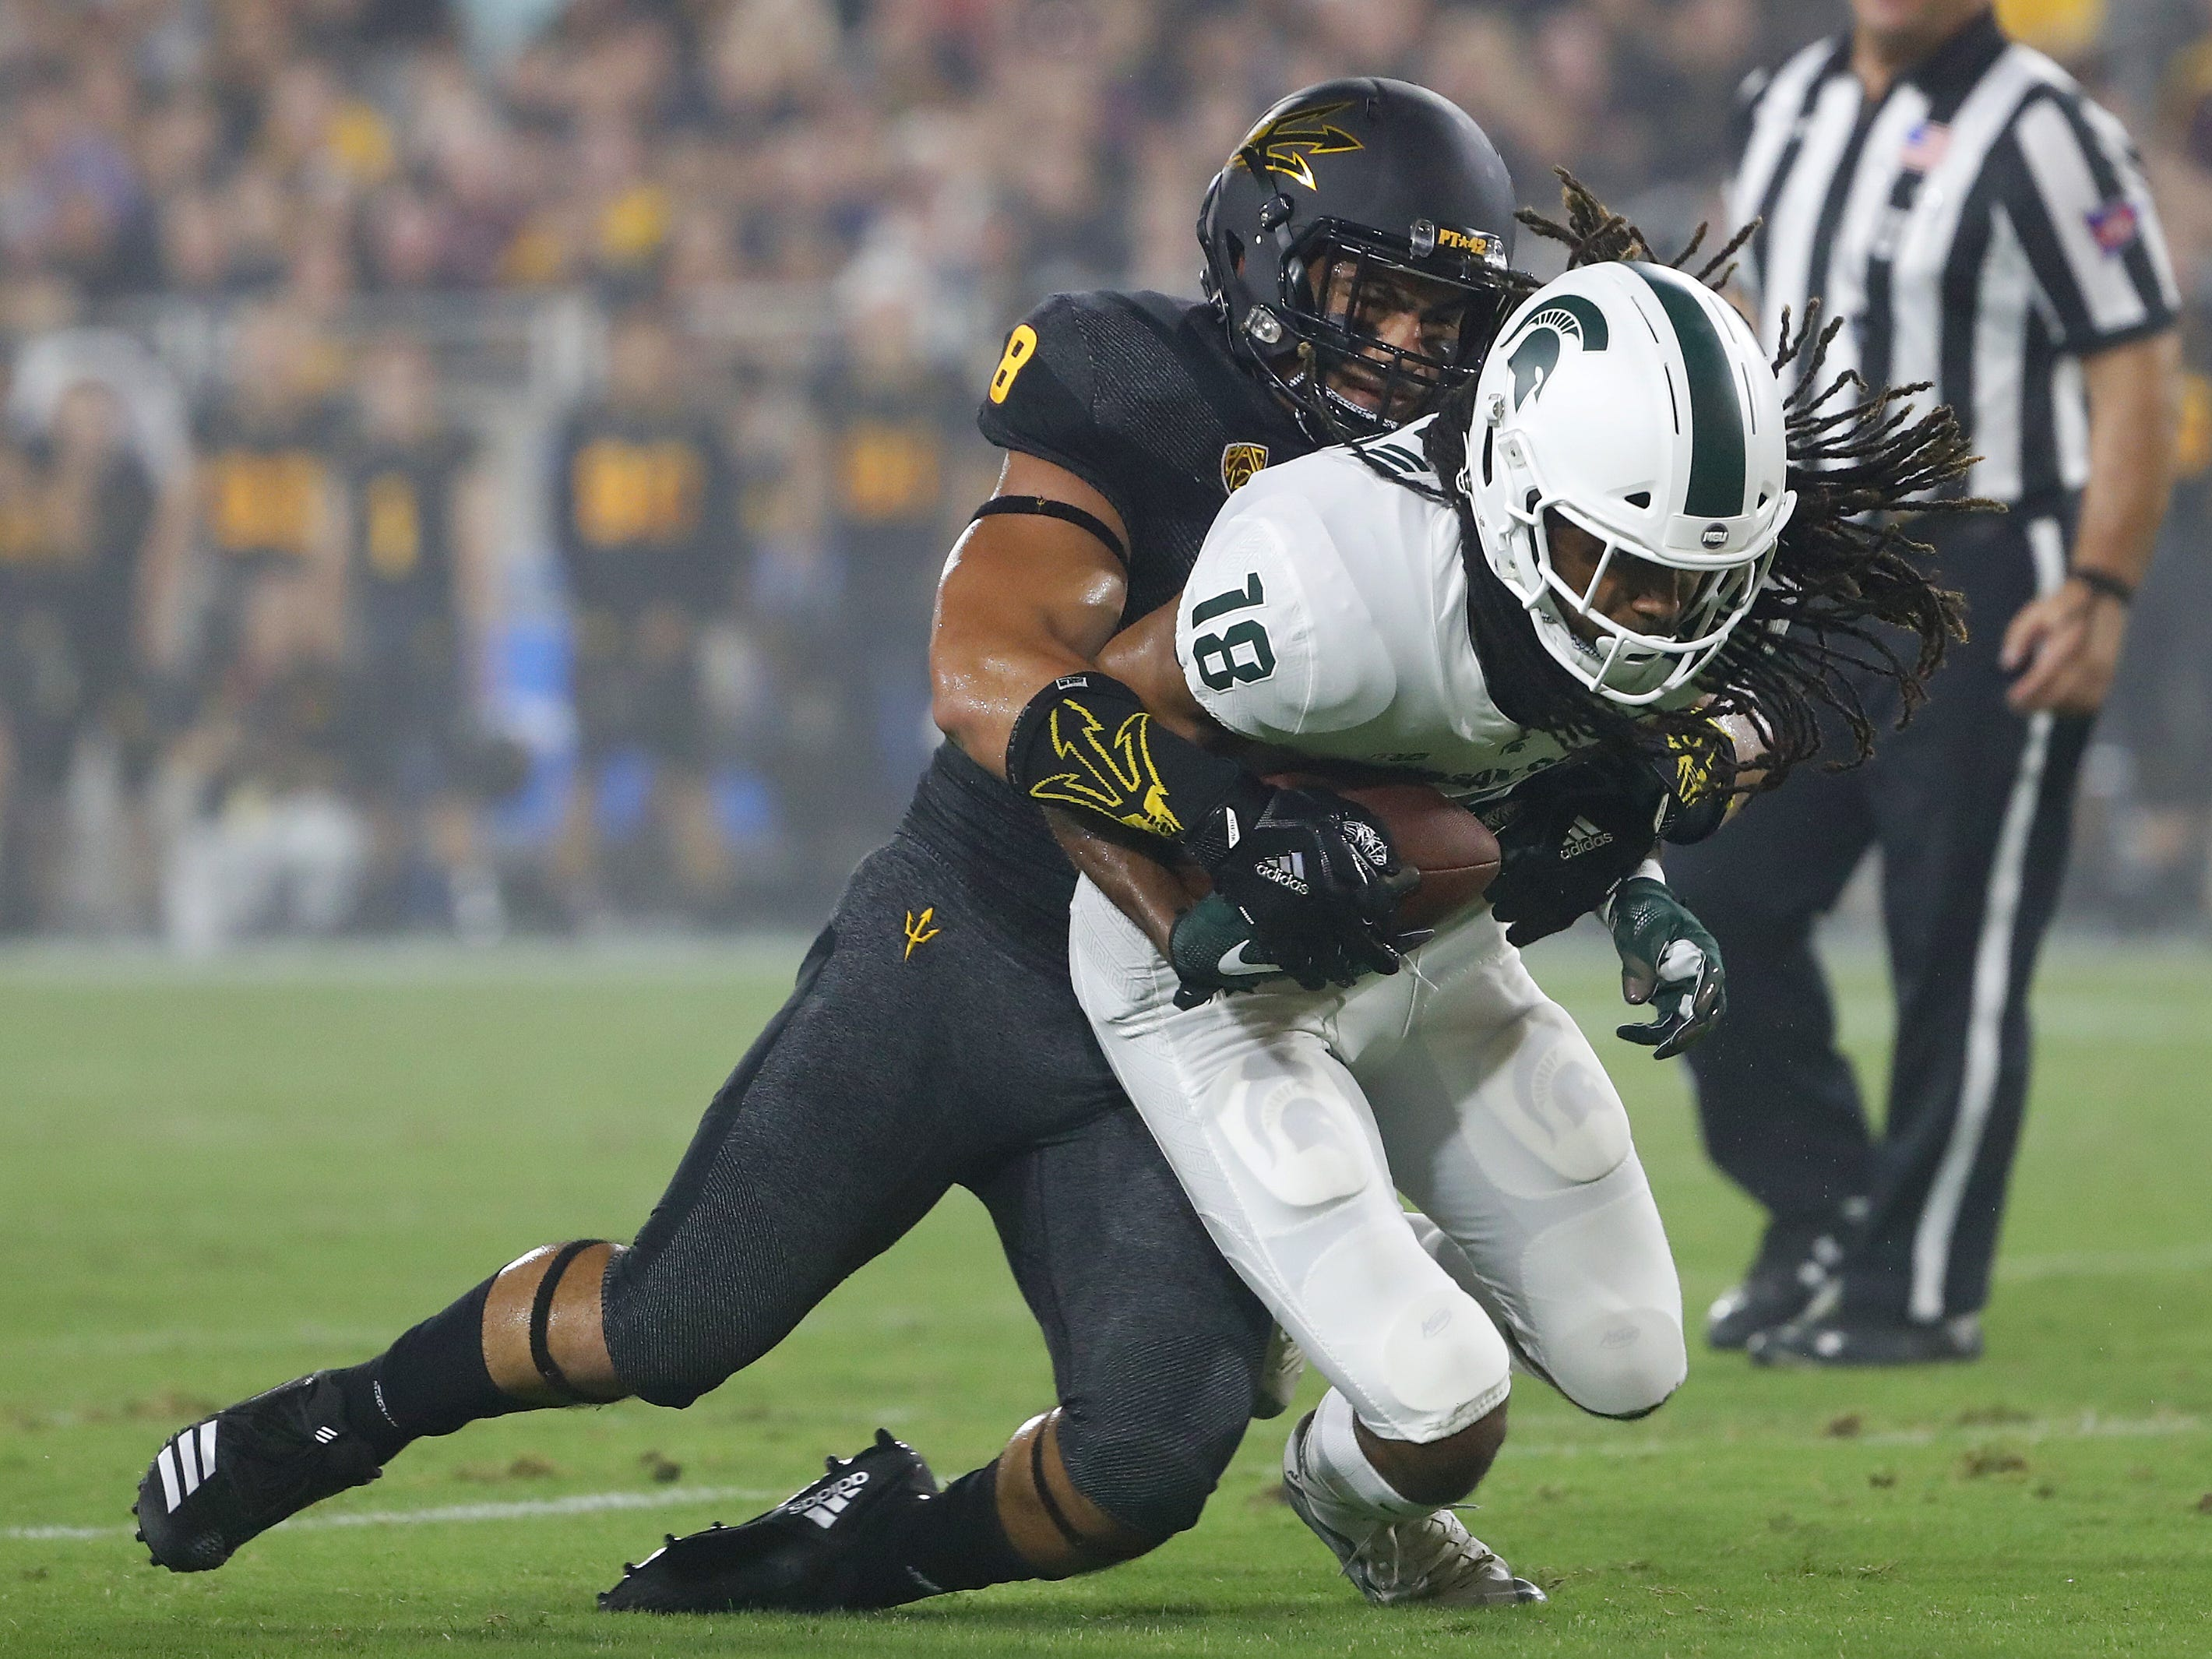 Arizona State Sun Devils linebacker Merlin Robertson (8) tackles Michigan State's Felton Davis III (18) after he makes a catch during the second quarter at Sun Devil Stadium in Tempe, Ariz. on Sept. 8, 2018.